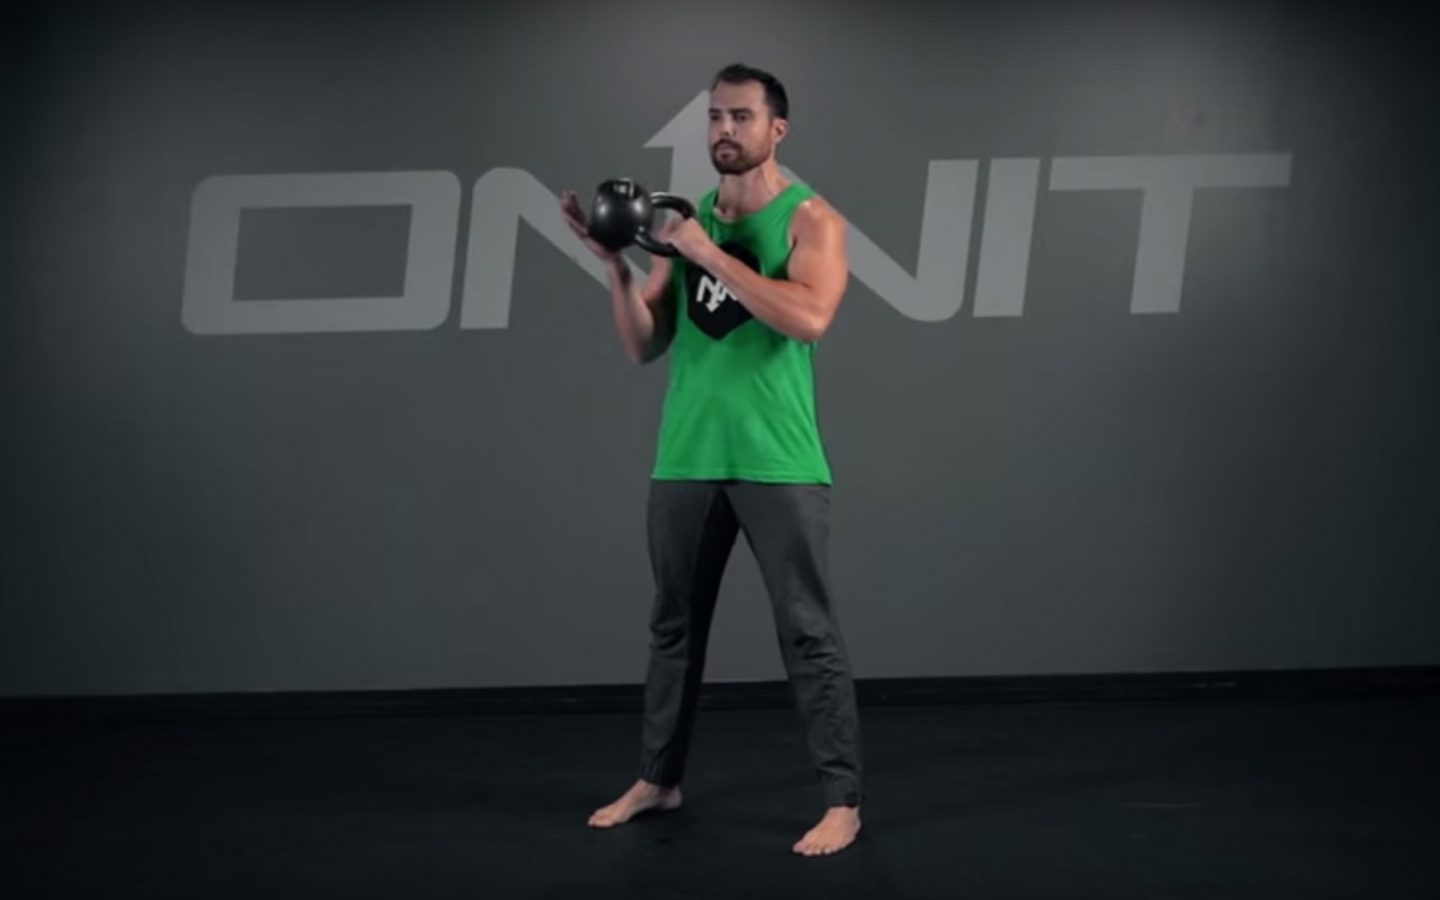 Kettlebell Figure 8 to Hold Exercise